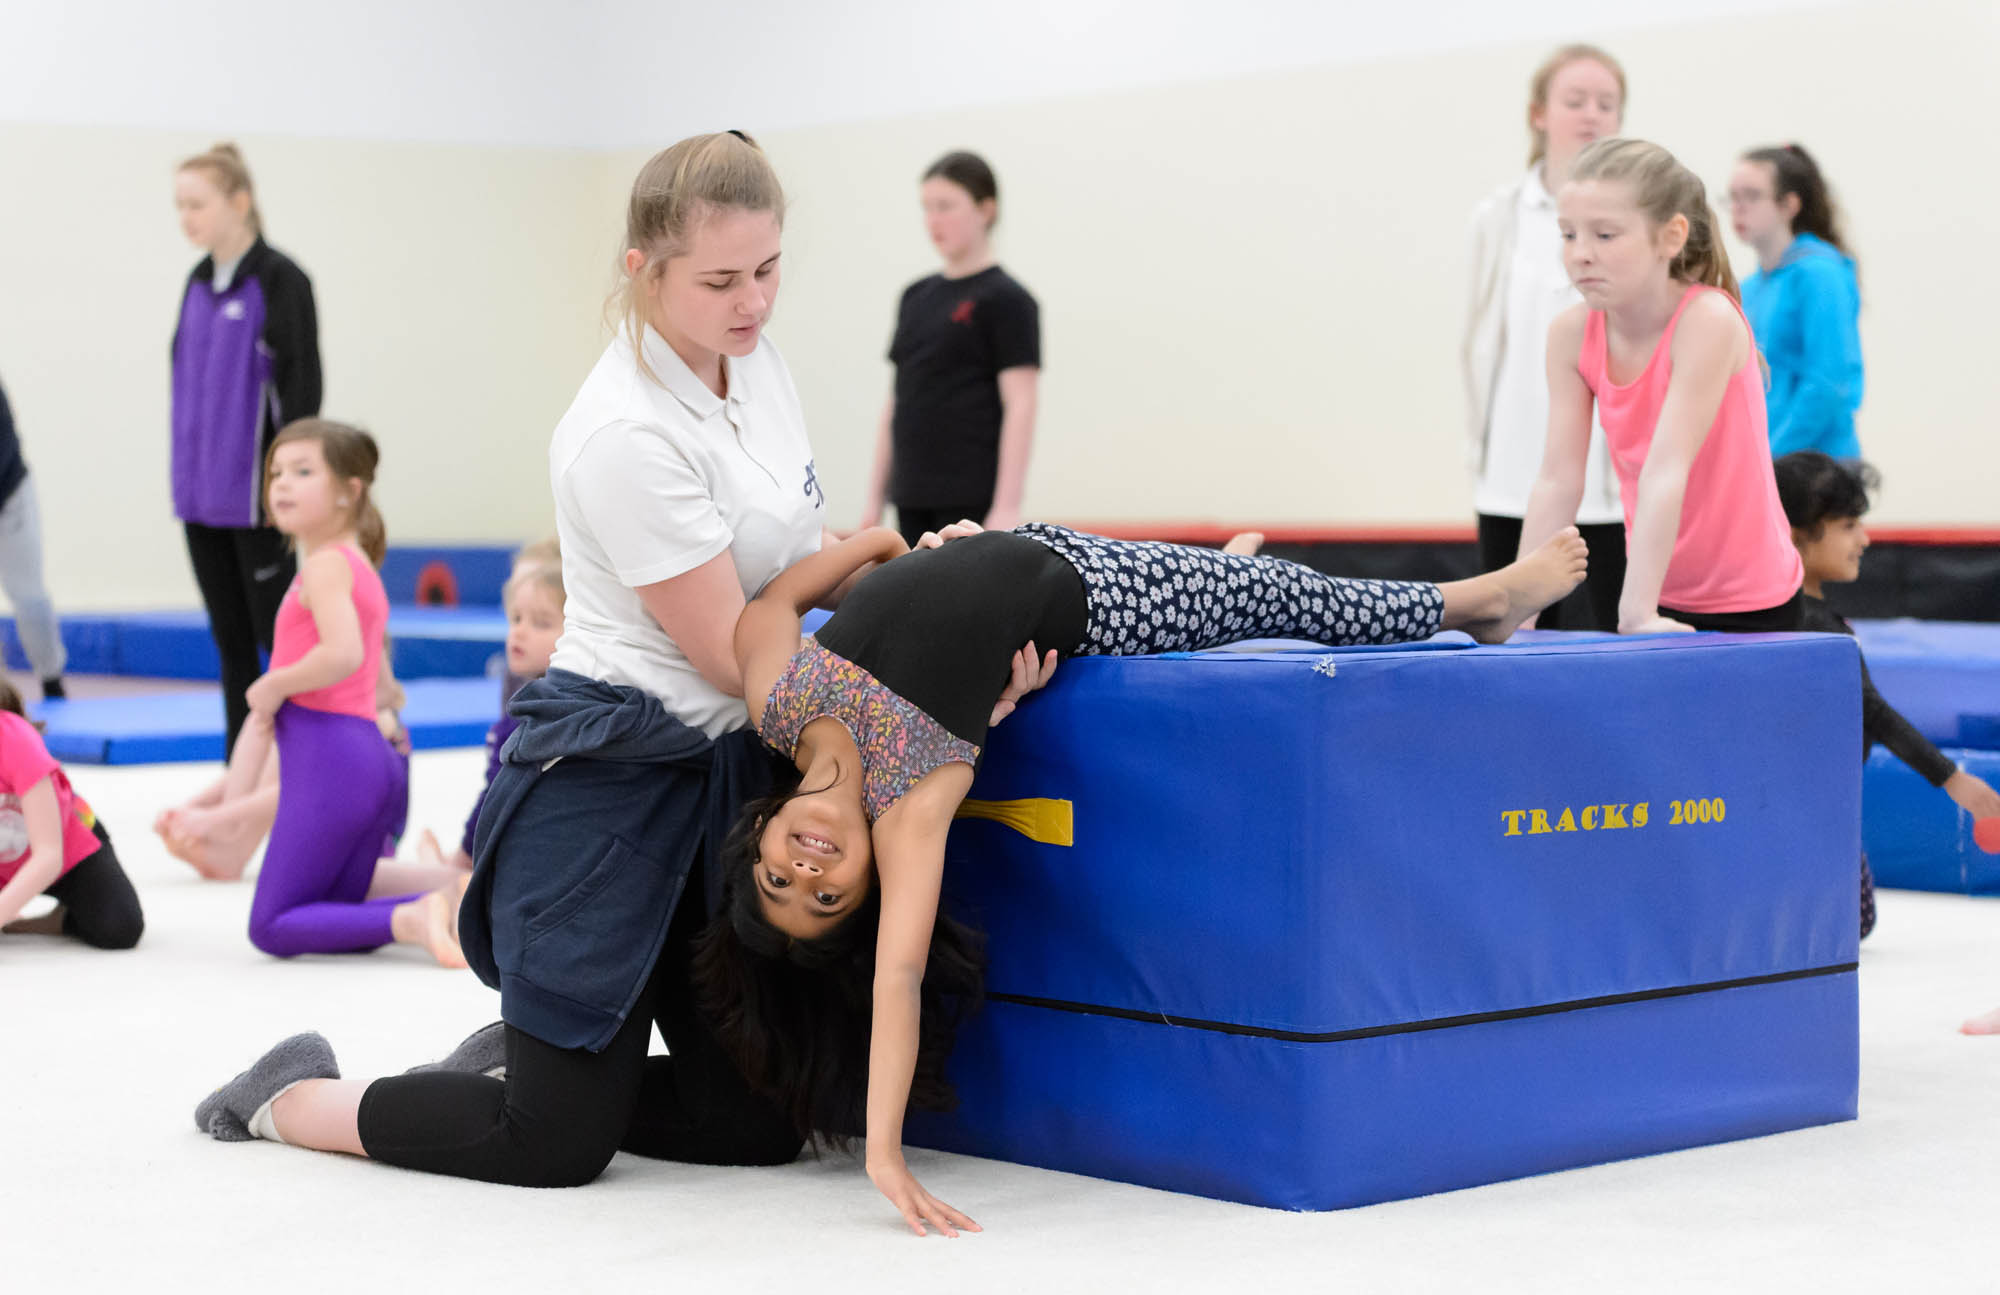 A young adult coach helps a child train in gymnastics